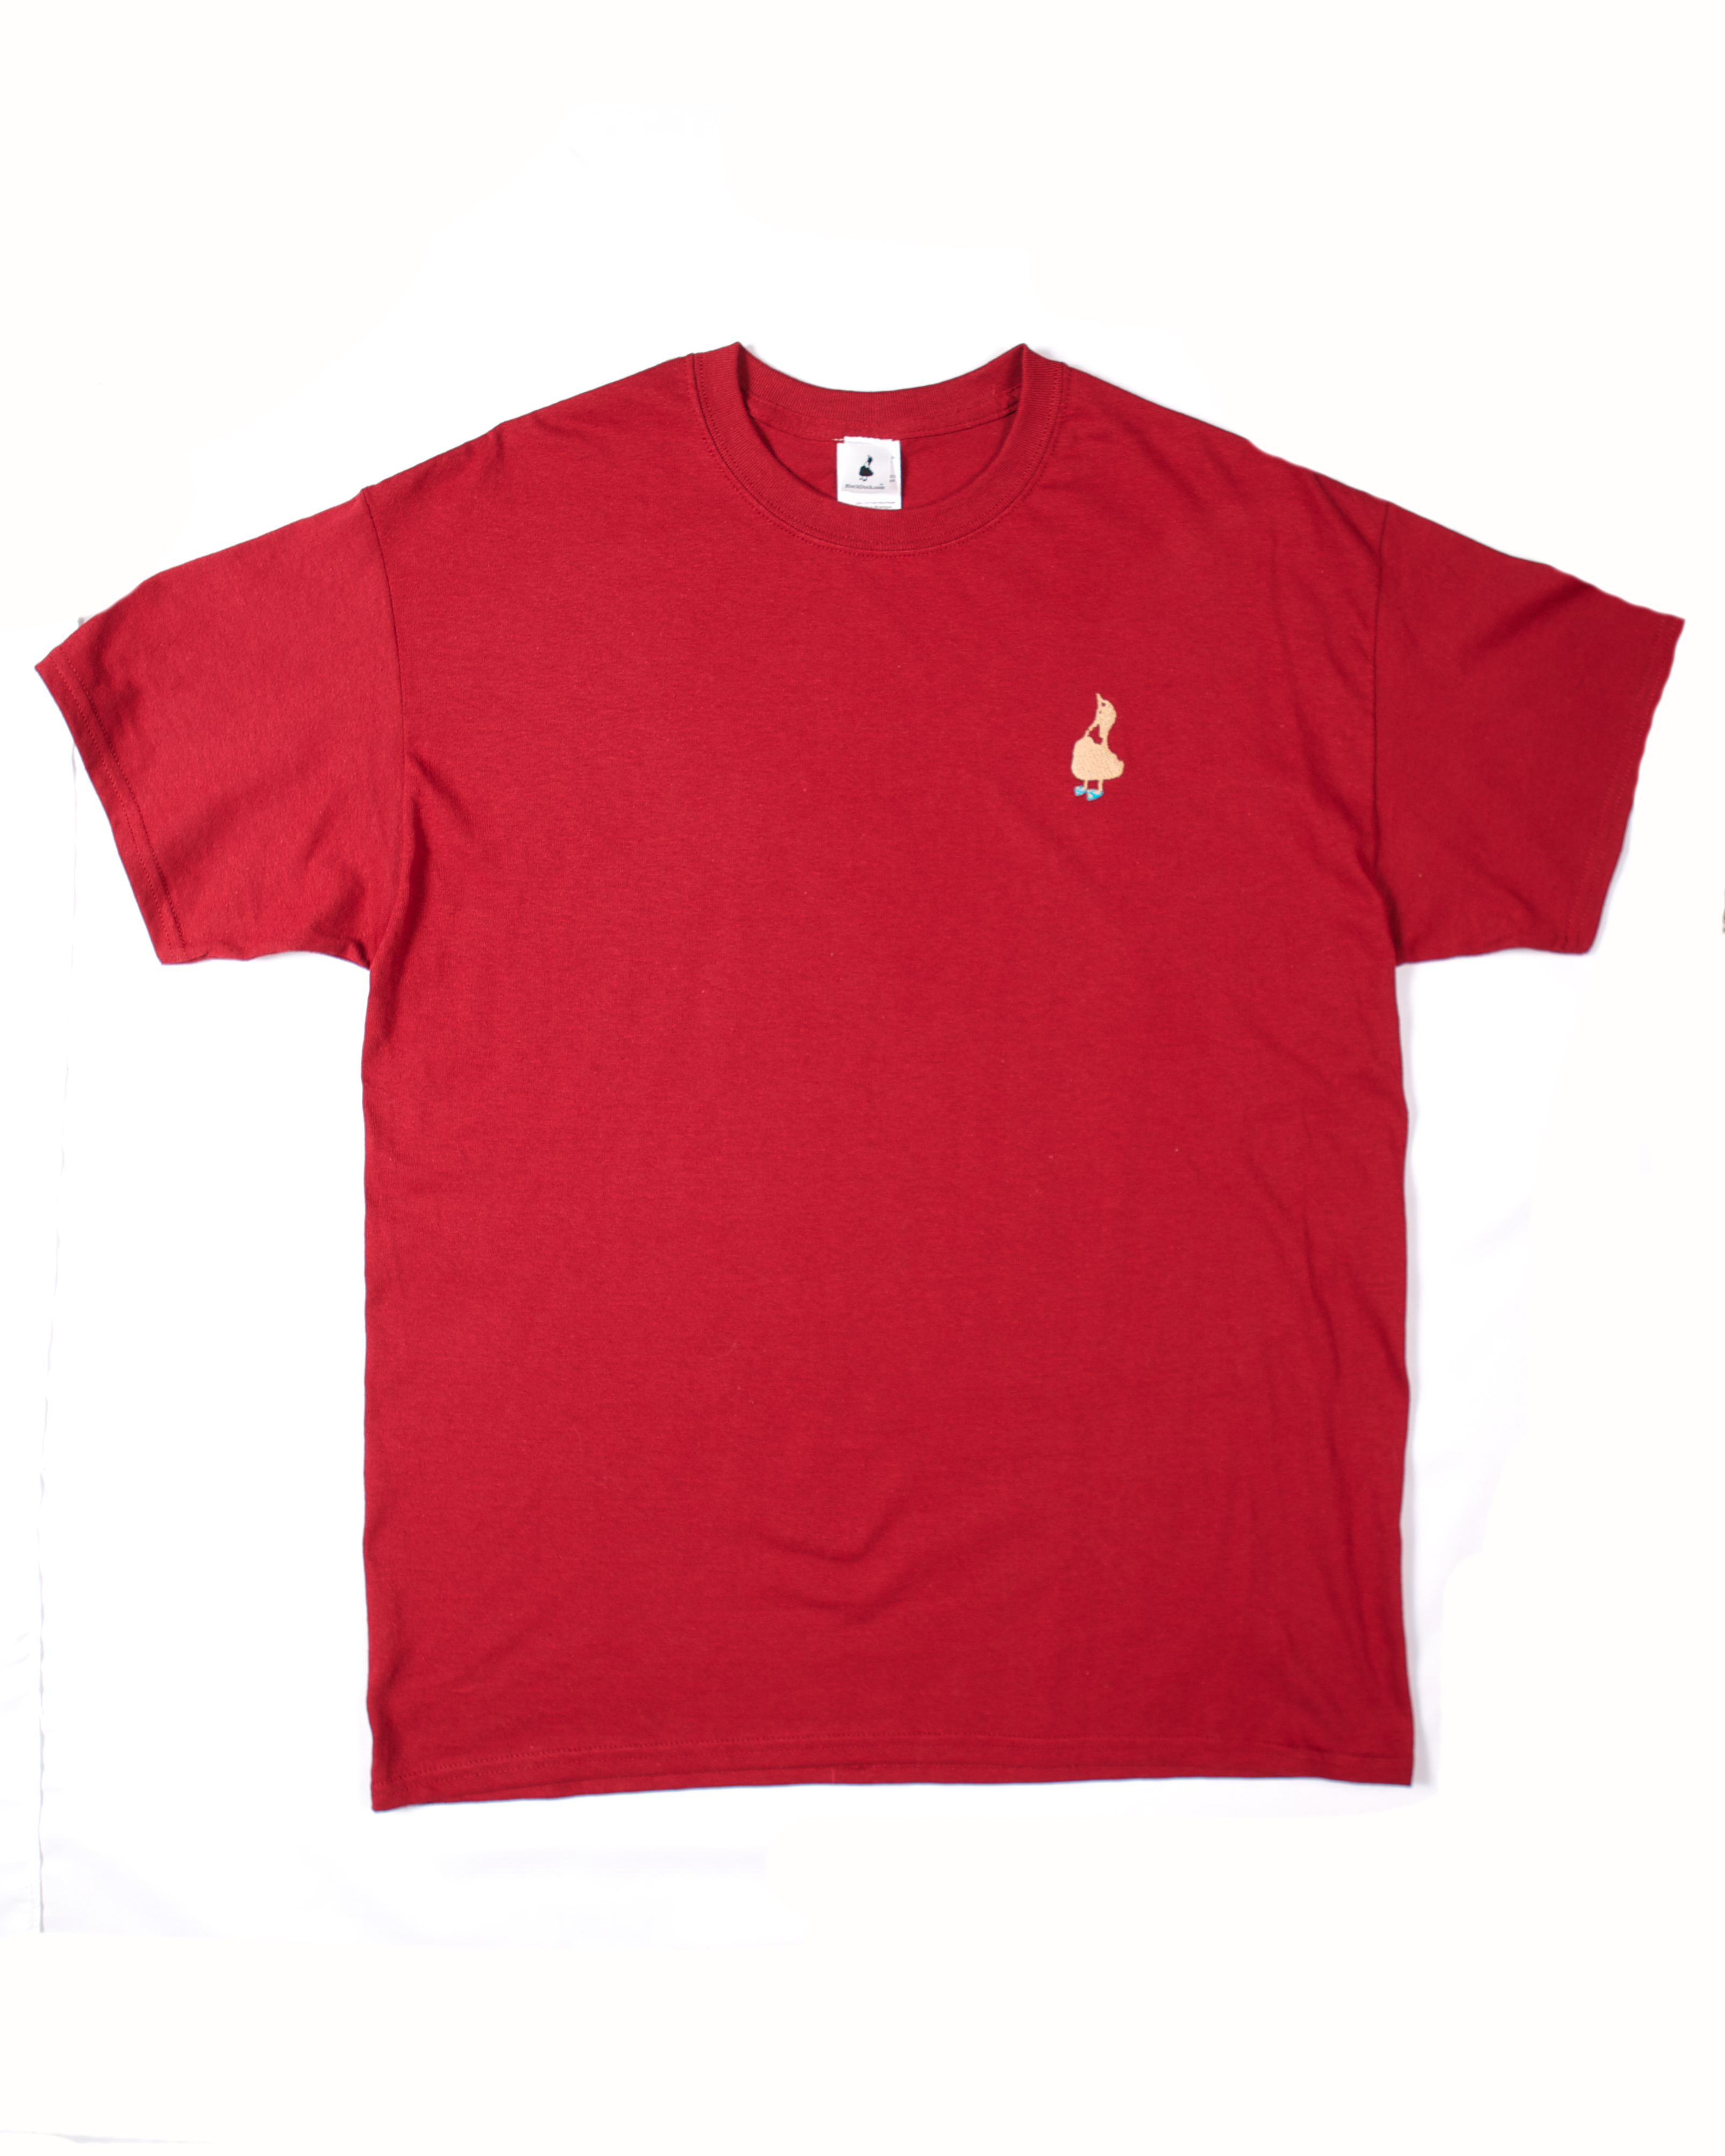 Z_Red Mens T